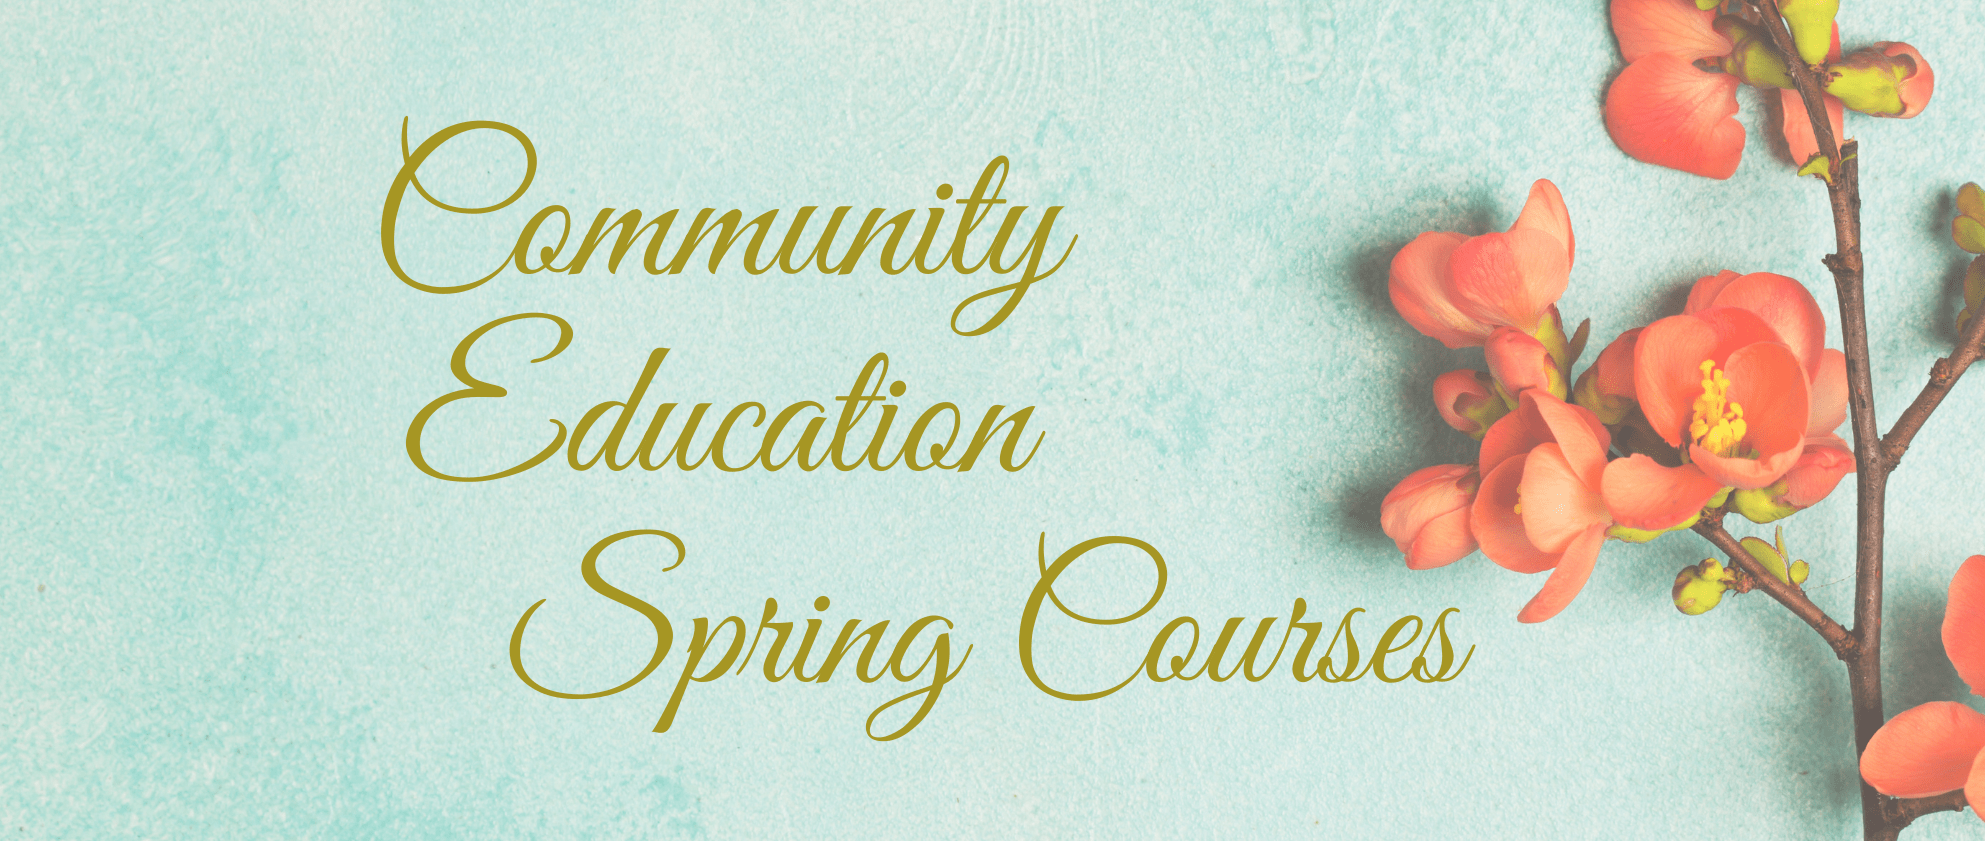 Spring Courses 2021